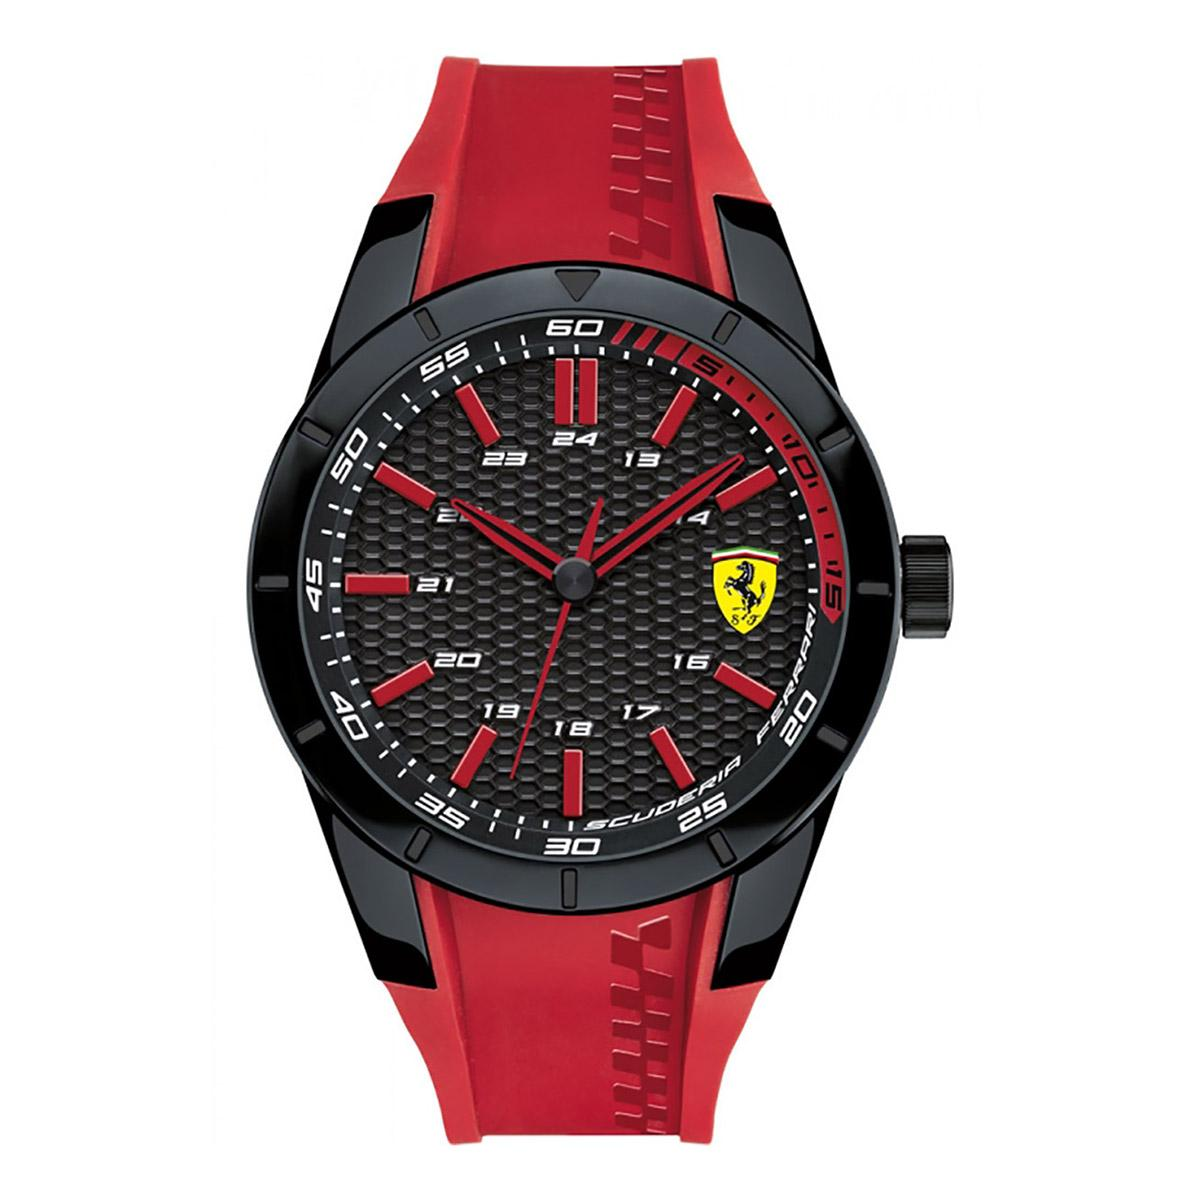 Compare Prices For Ferrari Watch Redrev Red Plastic Case Silicone Strap Mens 0830299